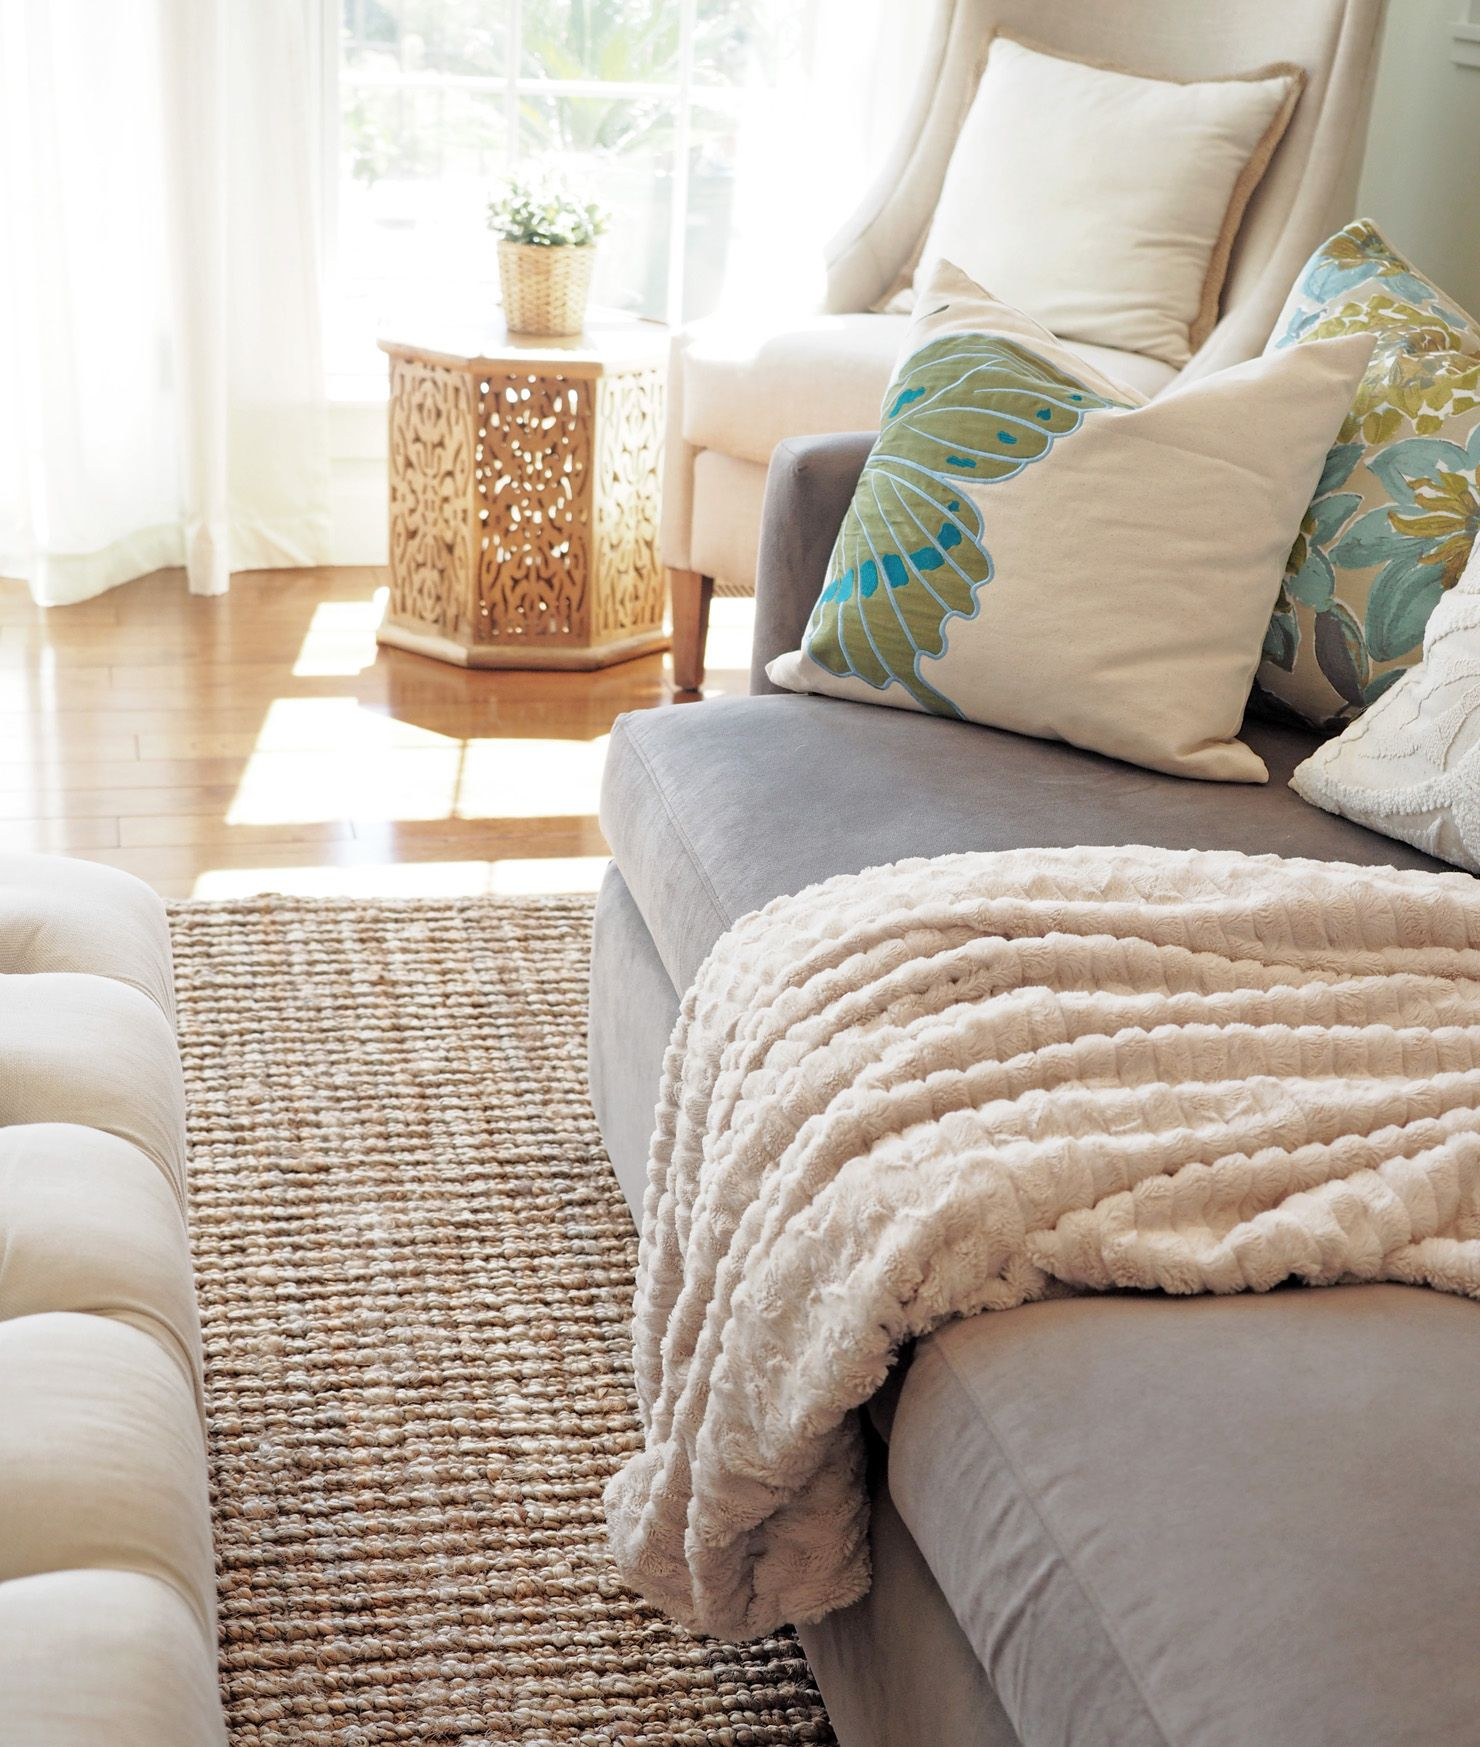 Jute Rug Is Ralph Lauren Purchased Recently At Home Goods. Butterfly Pillow  Pier 1 Imports. Corner Linen Chair U2013 Carol House Furniture, St. Louis,  Missouri; ...